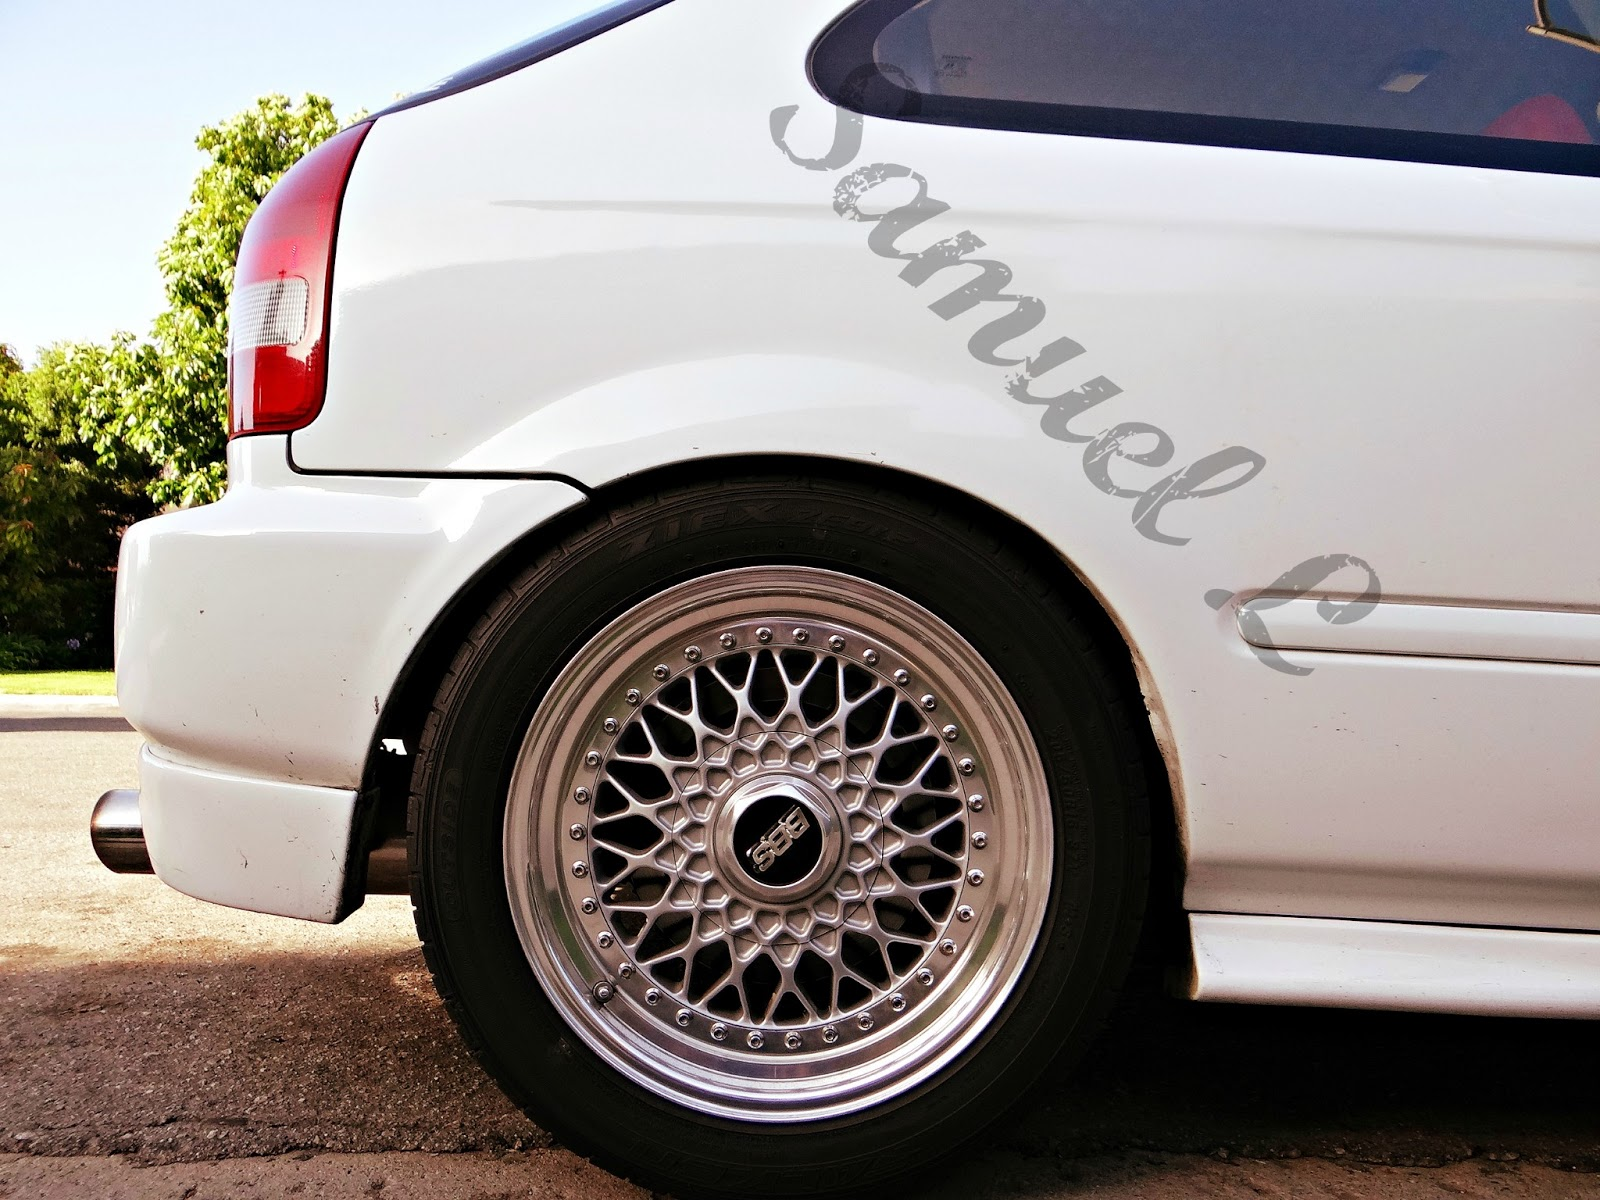 Bbs Rs Rims Civic | www.imgkid.com - The Image Kid Has It!